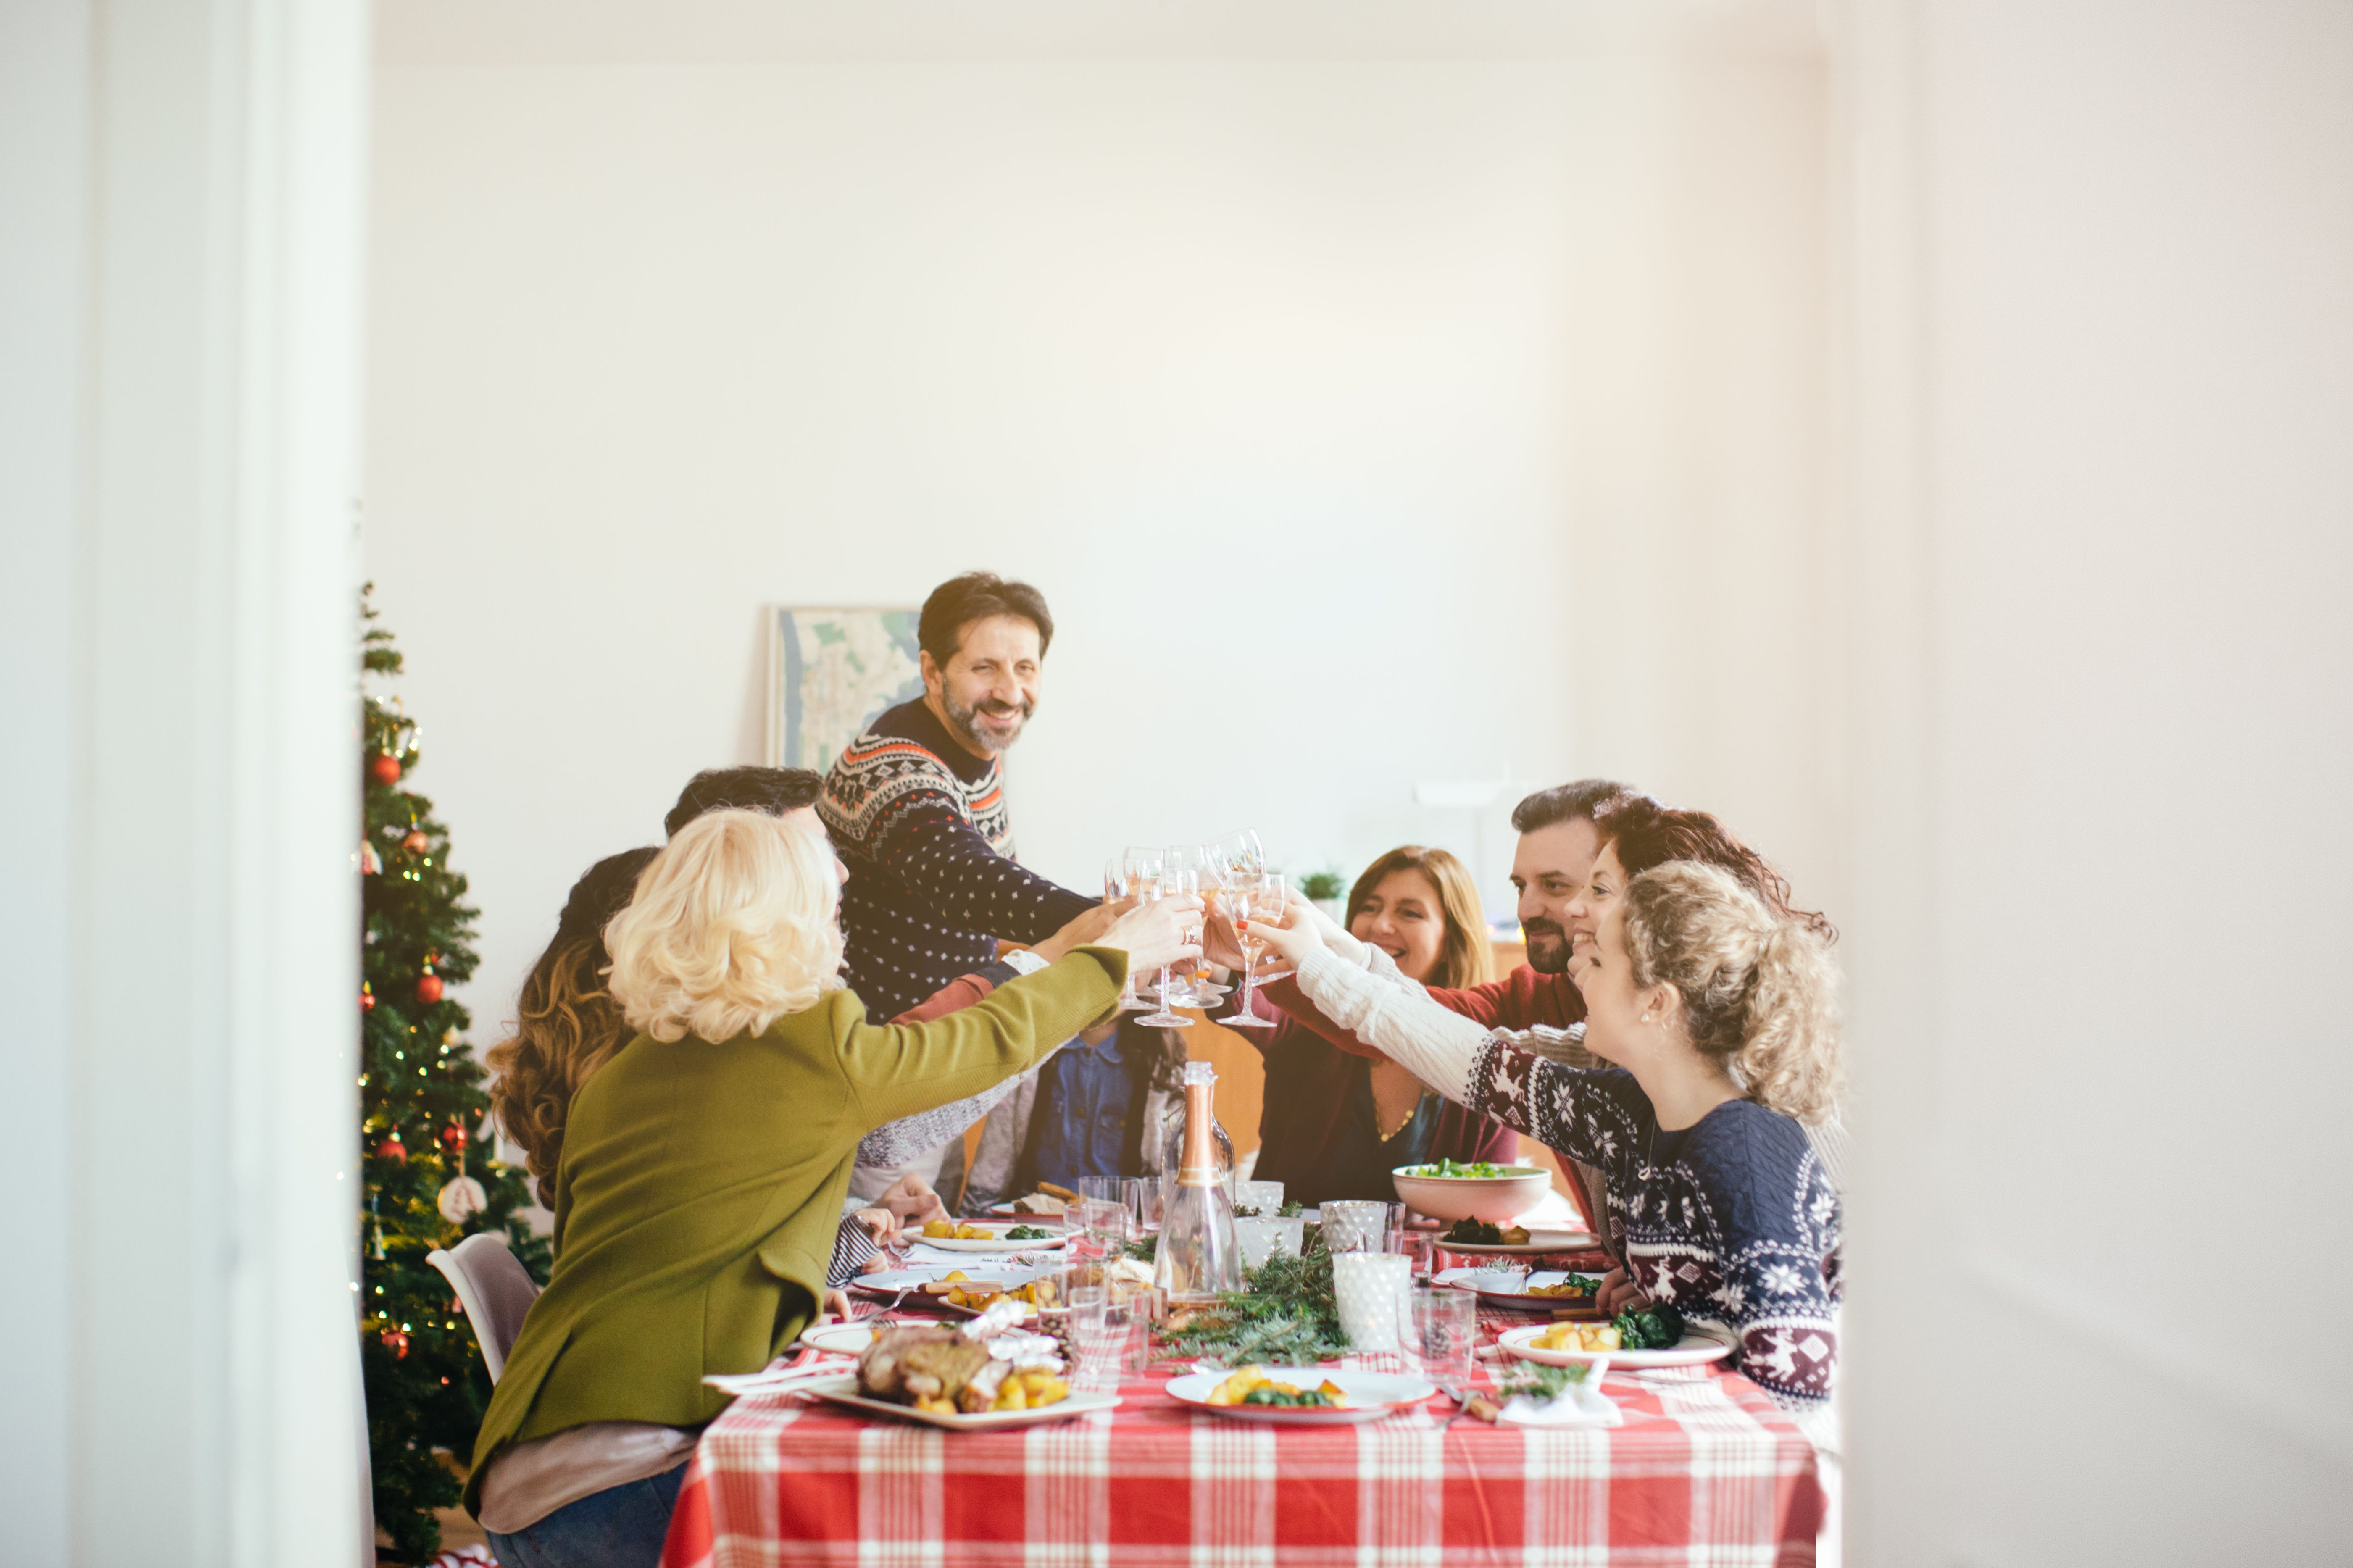 6 Reasons Christmas Is Bad for the Environment